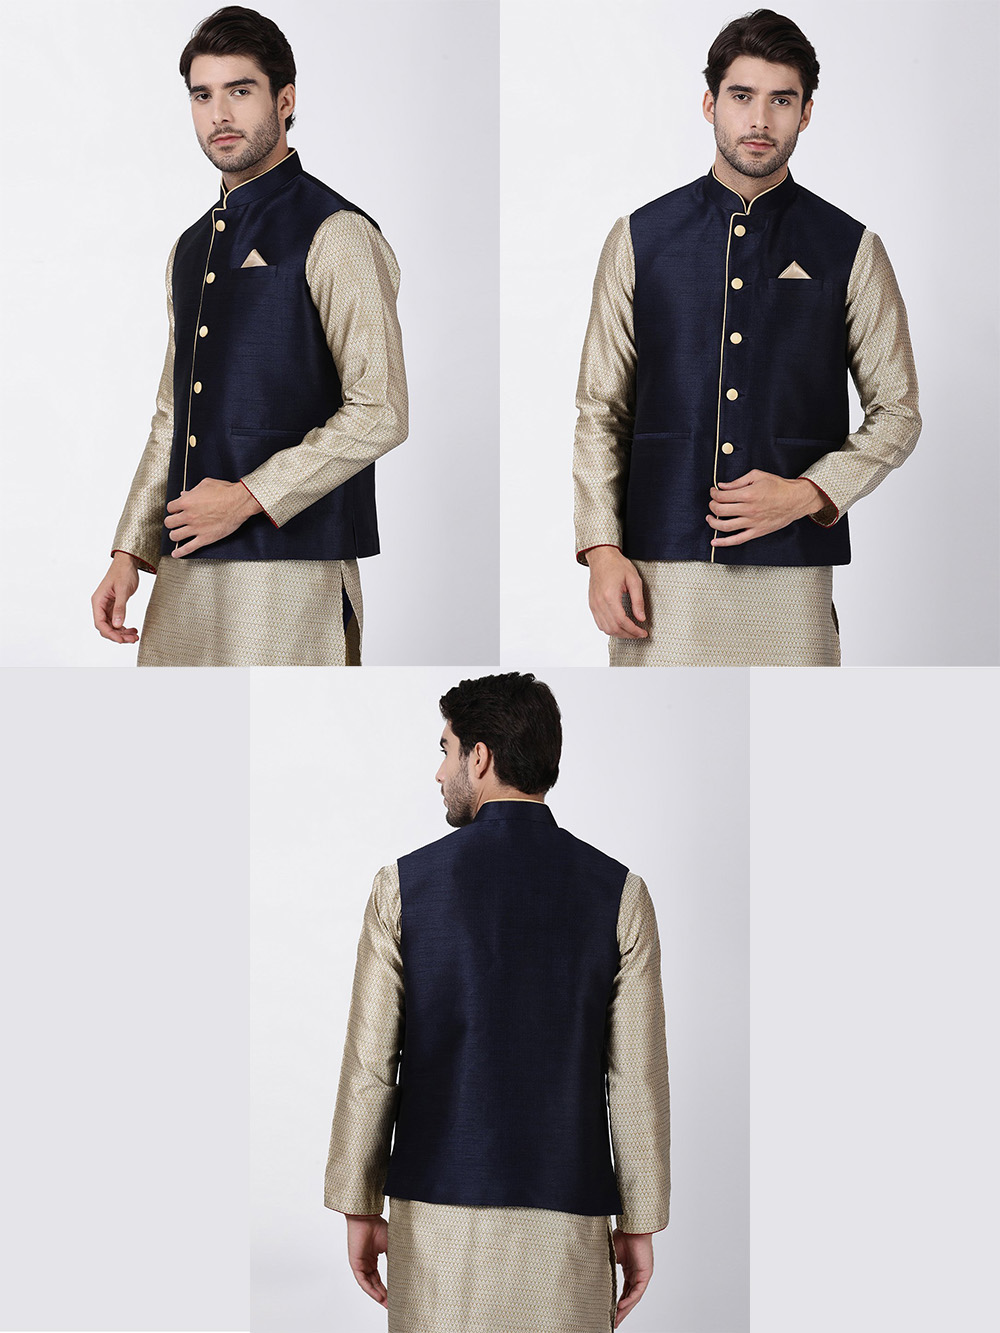 DESIGNER INDIAN JACKET-600010-XL - $59.99